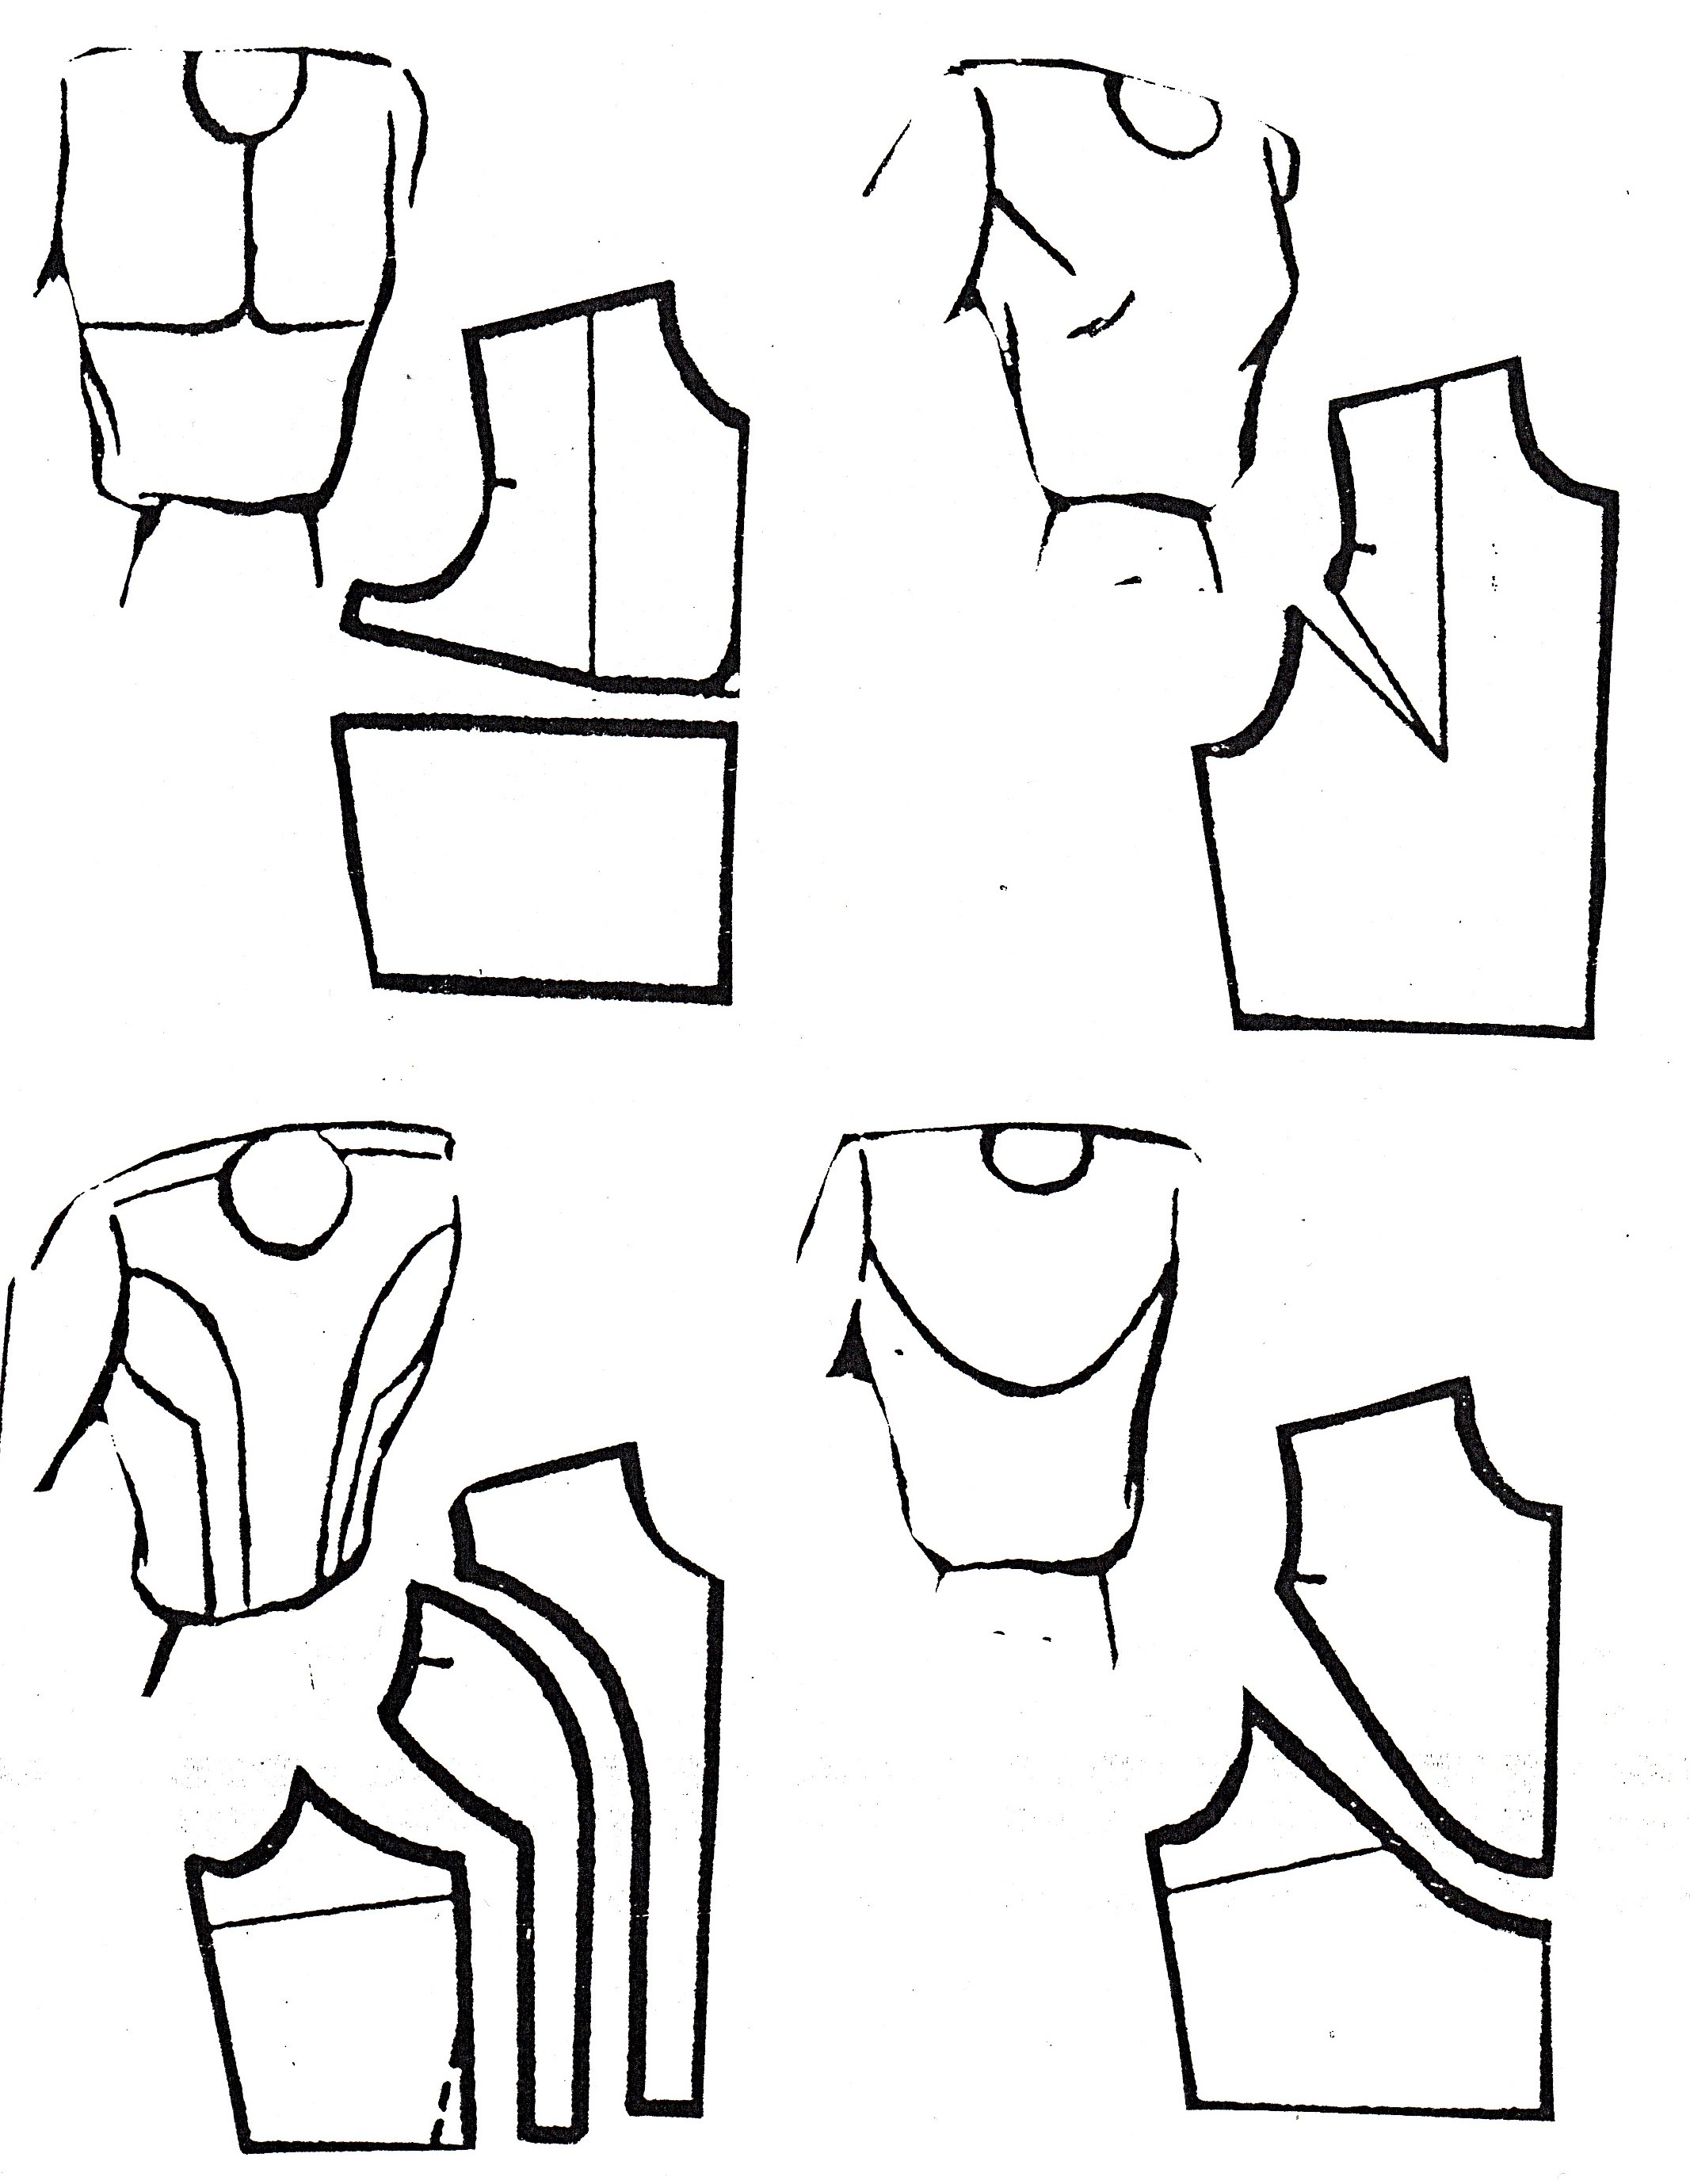 Advanced bodice pattern cutting - Jane White Tuition